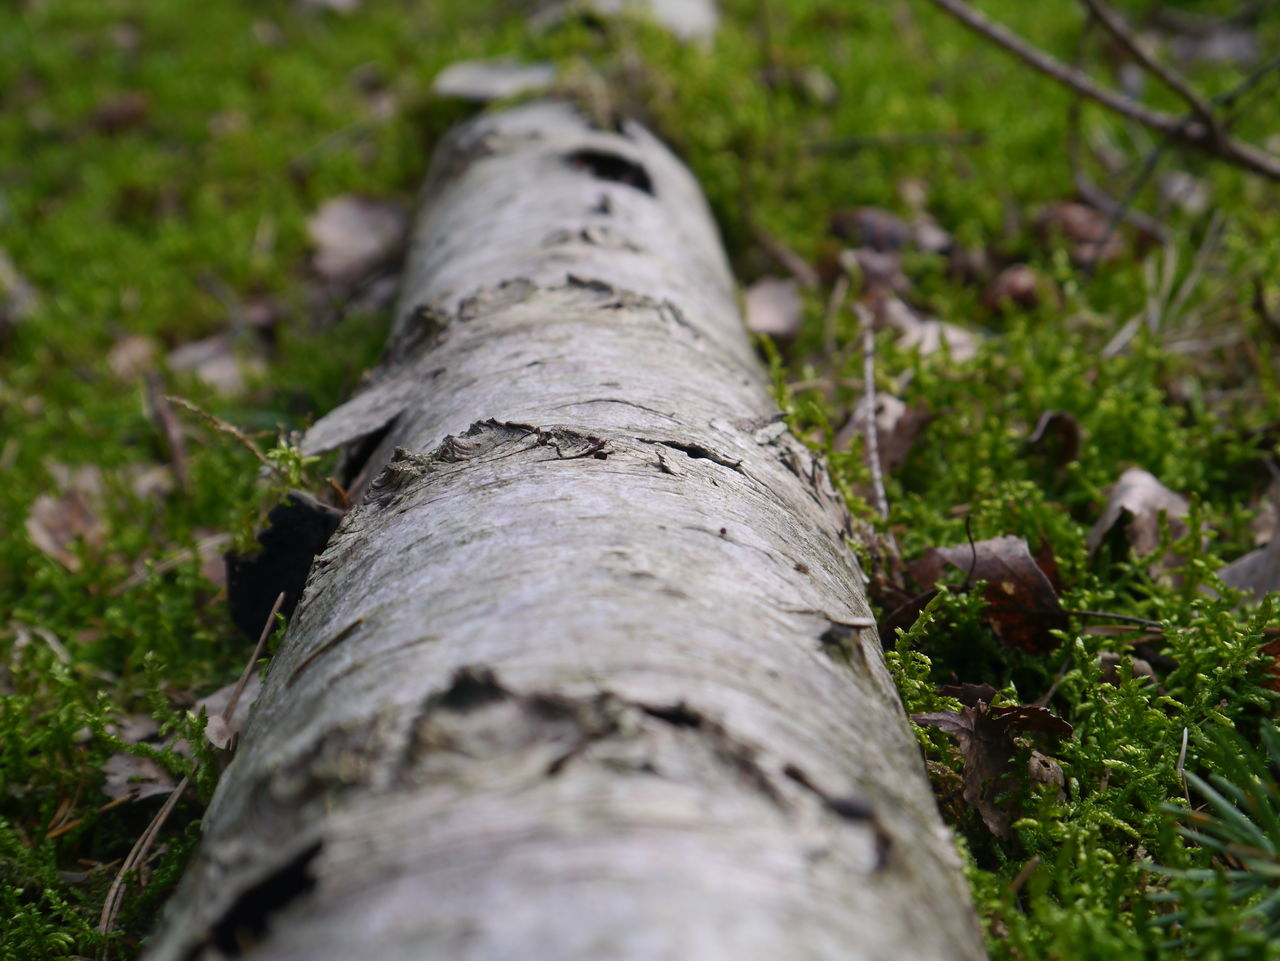 Close-up Day Deforestation Environmental Issues Fallen Tree Fossil Fuel Fuel And Power Generation Grass Log Lumber Industry Nature No People Outdoors Plant Bark Textured  Timber Tree Tree Ring Tree Trunk Wood - Material